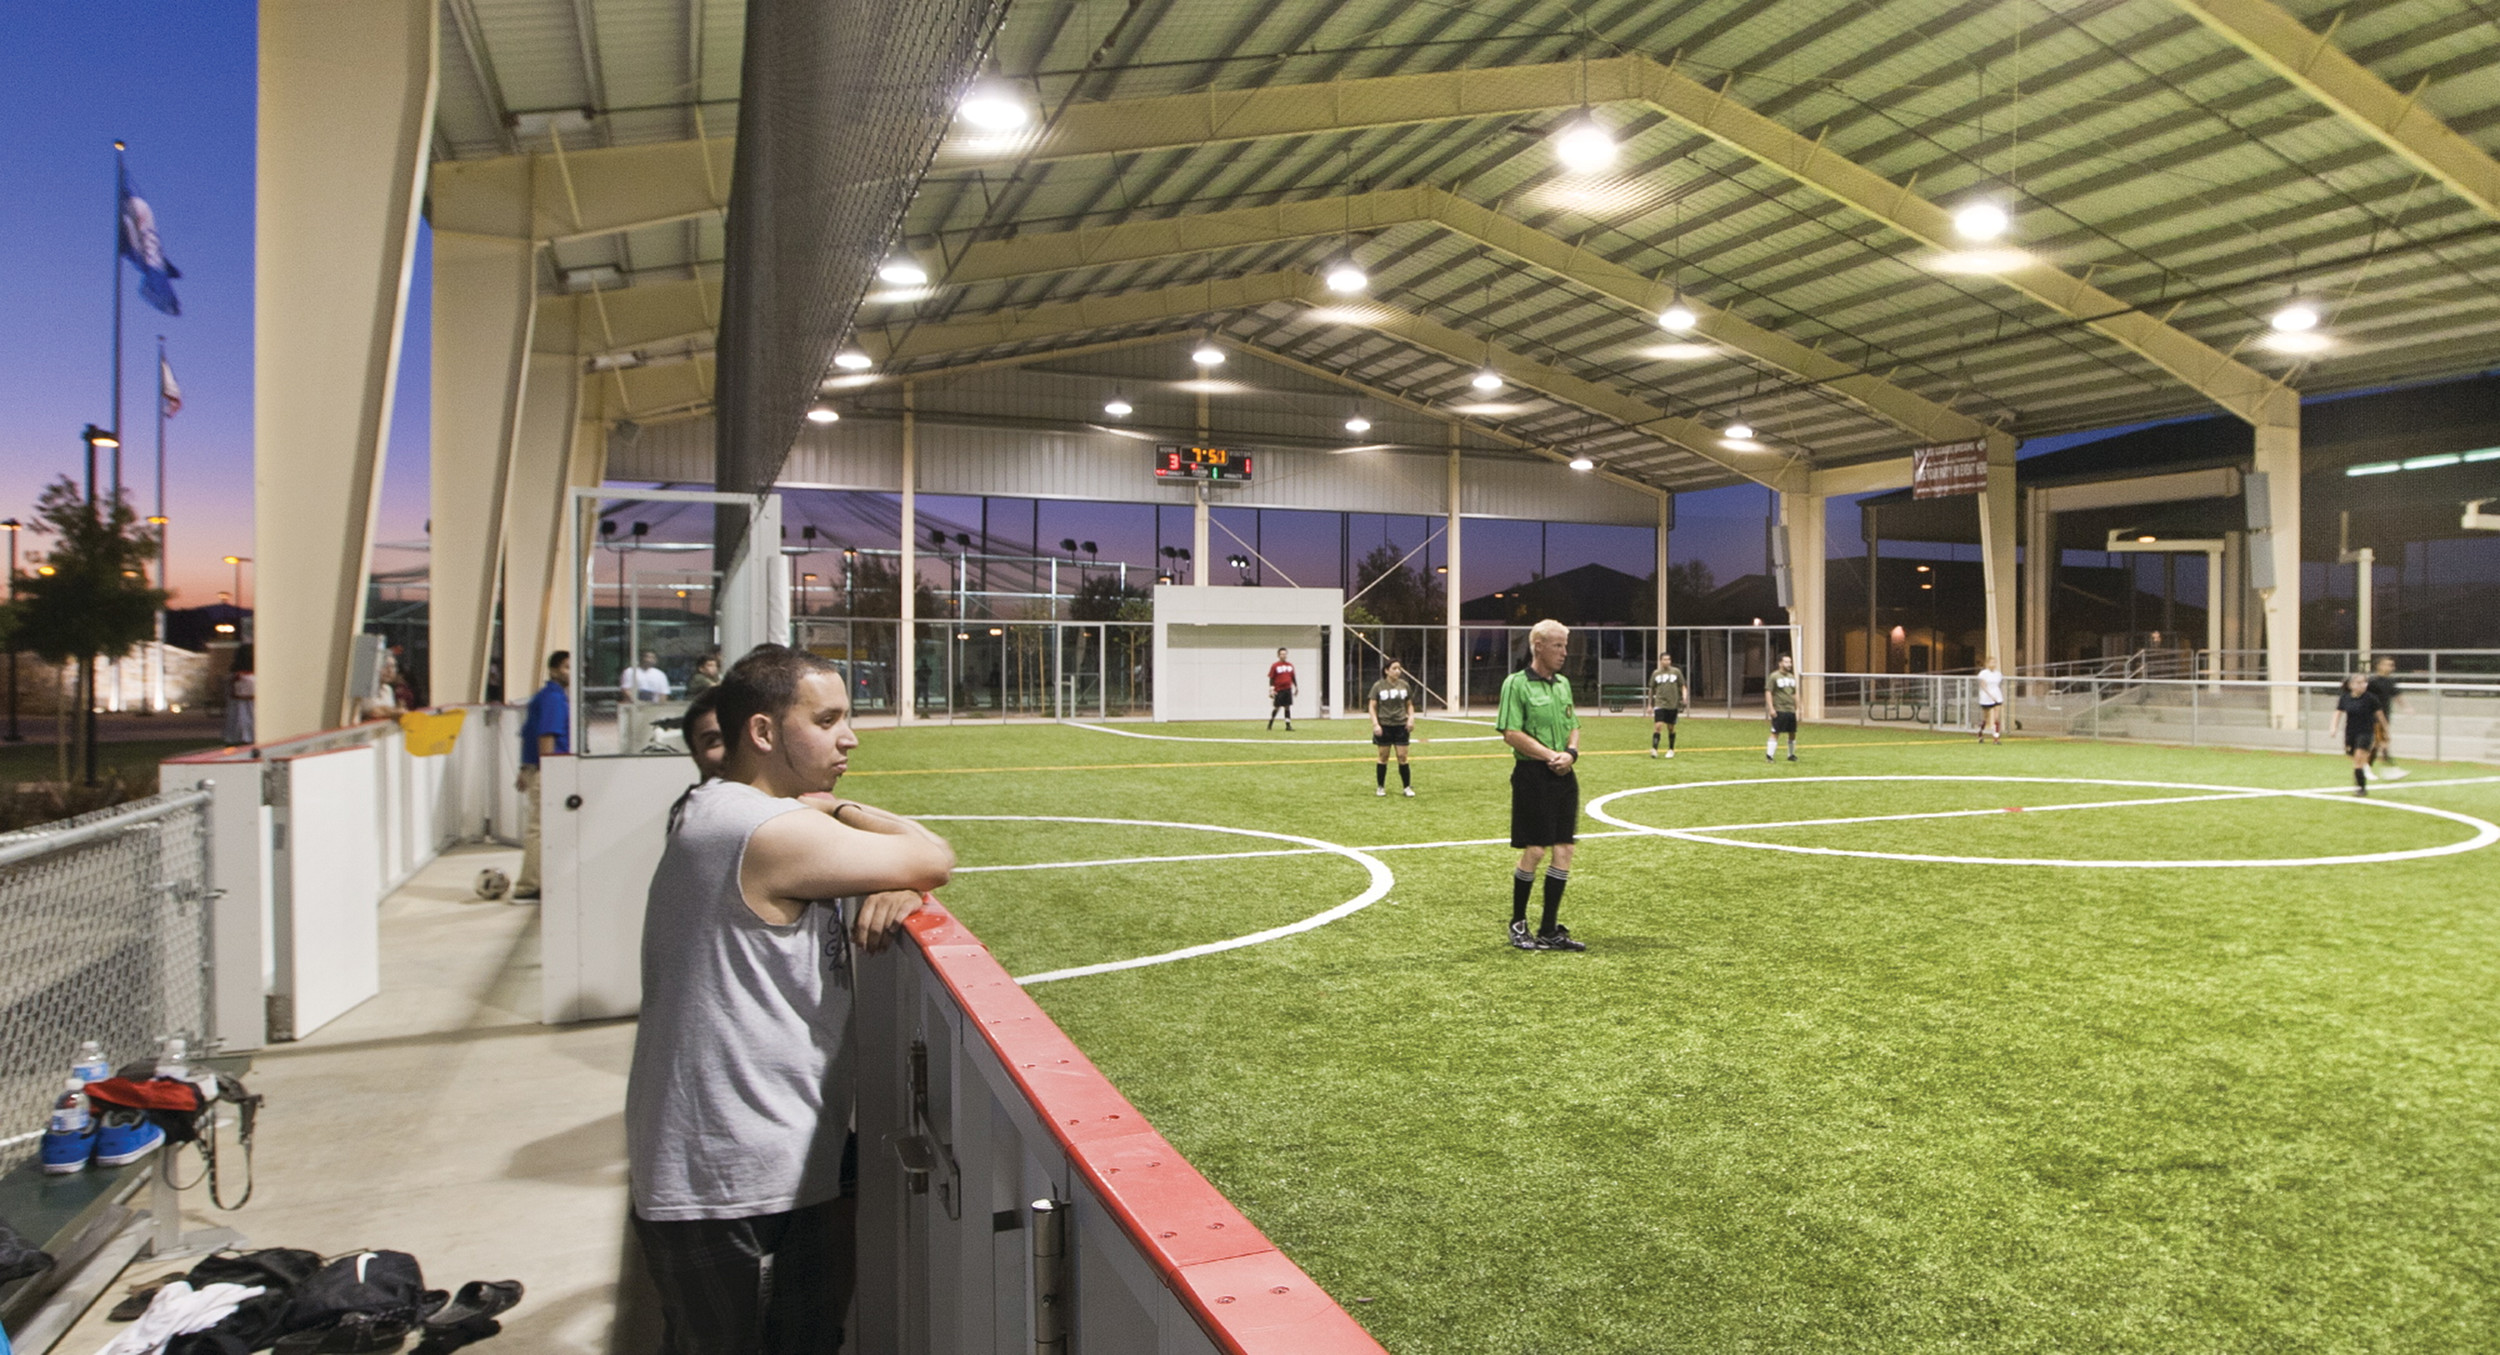 Soccer players are not forgotten in the plans for the Big League Dreams Sports Park near Middleburg. In addition to five baseball fields, there is an indoor pavilion that can be used for soccer. The Clay County Board of Commissioners is considering the $19 million facility.